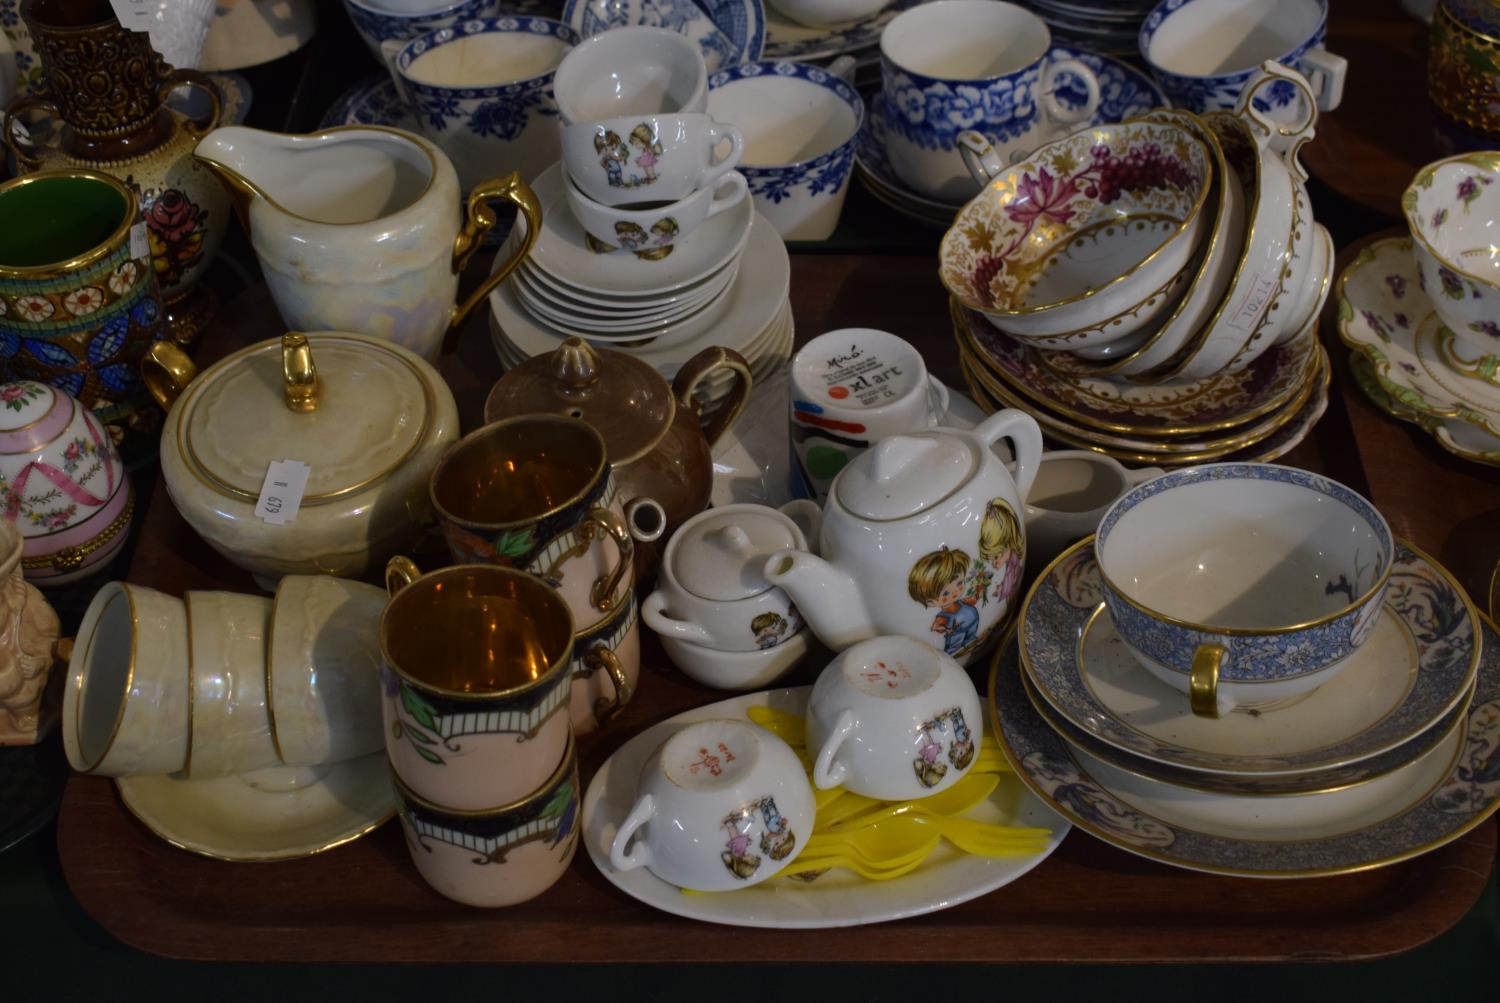 Lot 195 - A Tray Containing Various Coffee Cans and Saucers, Child's Teaset, Teacups and Saucers, Pearl Ware